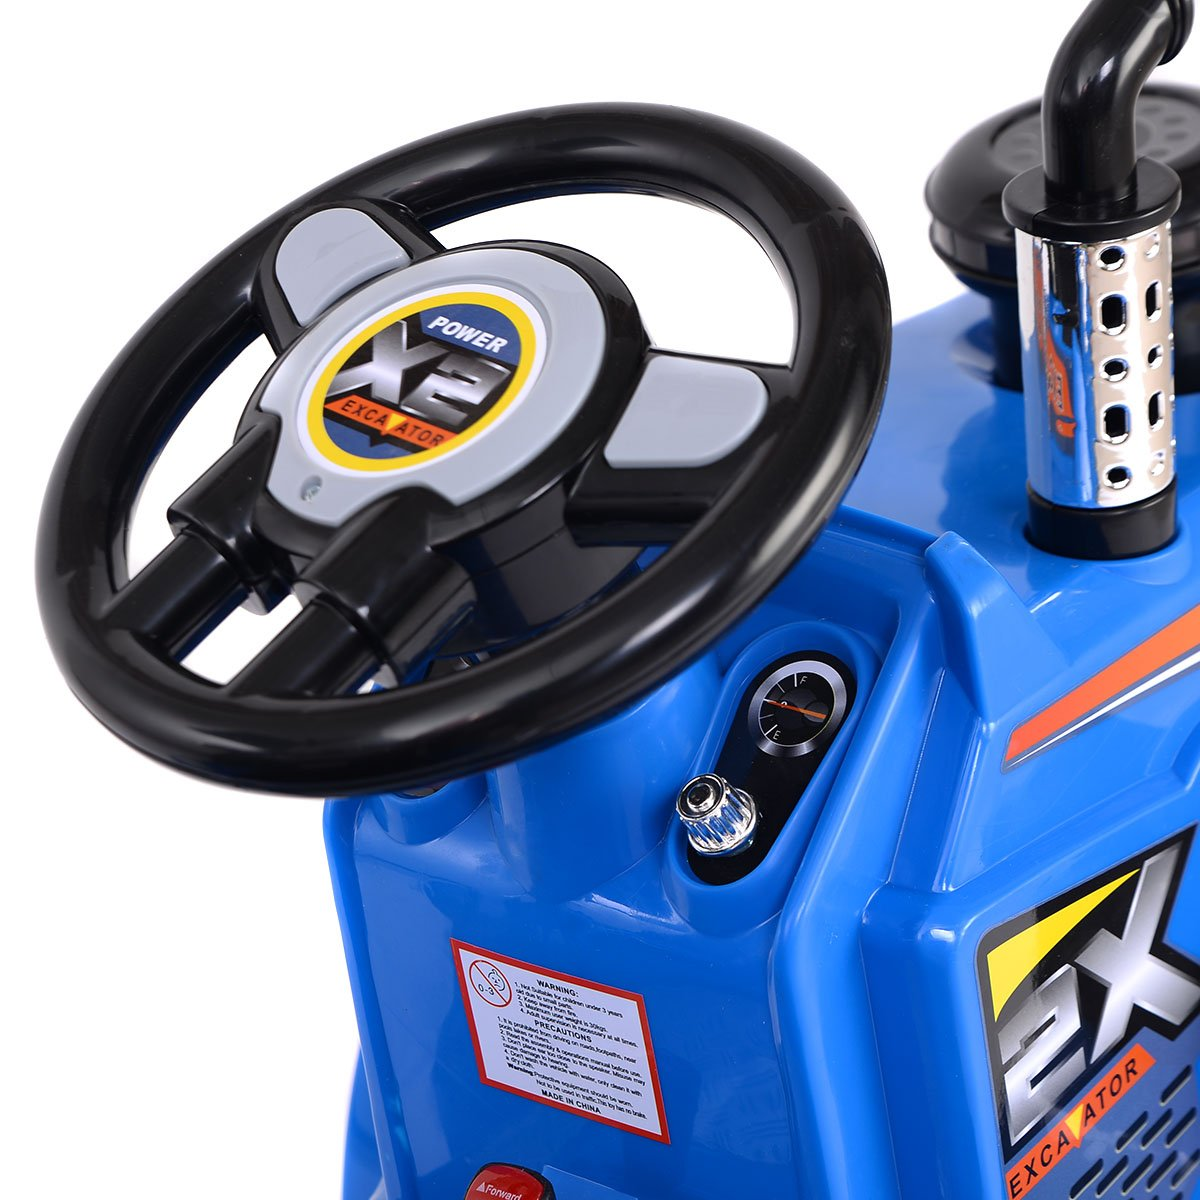 Blue 12V Battery Operated Children Tractor Truck with MP3 System /& Horn Sound Button COSTWAY Kids Electric Ride On Toy Car CE Certification